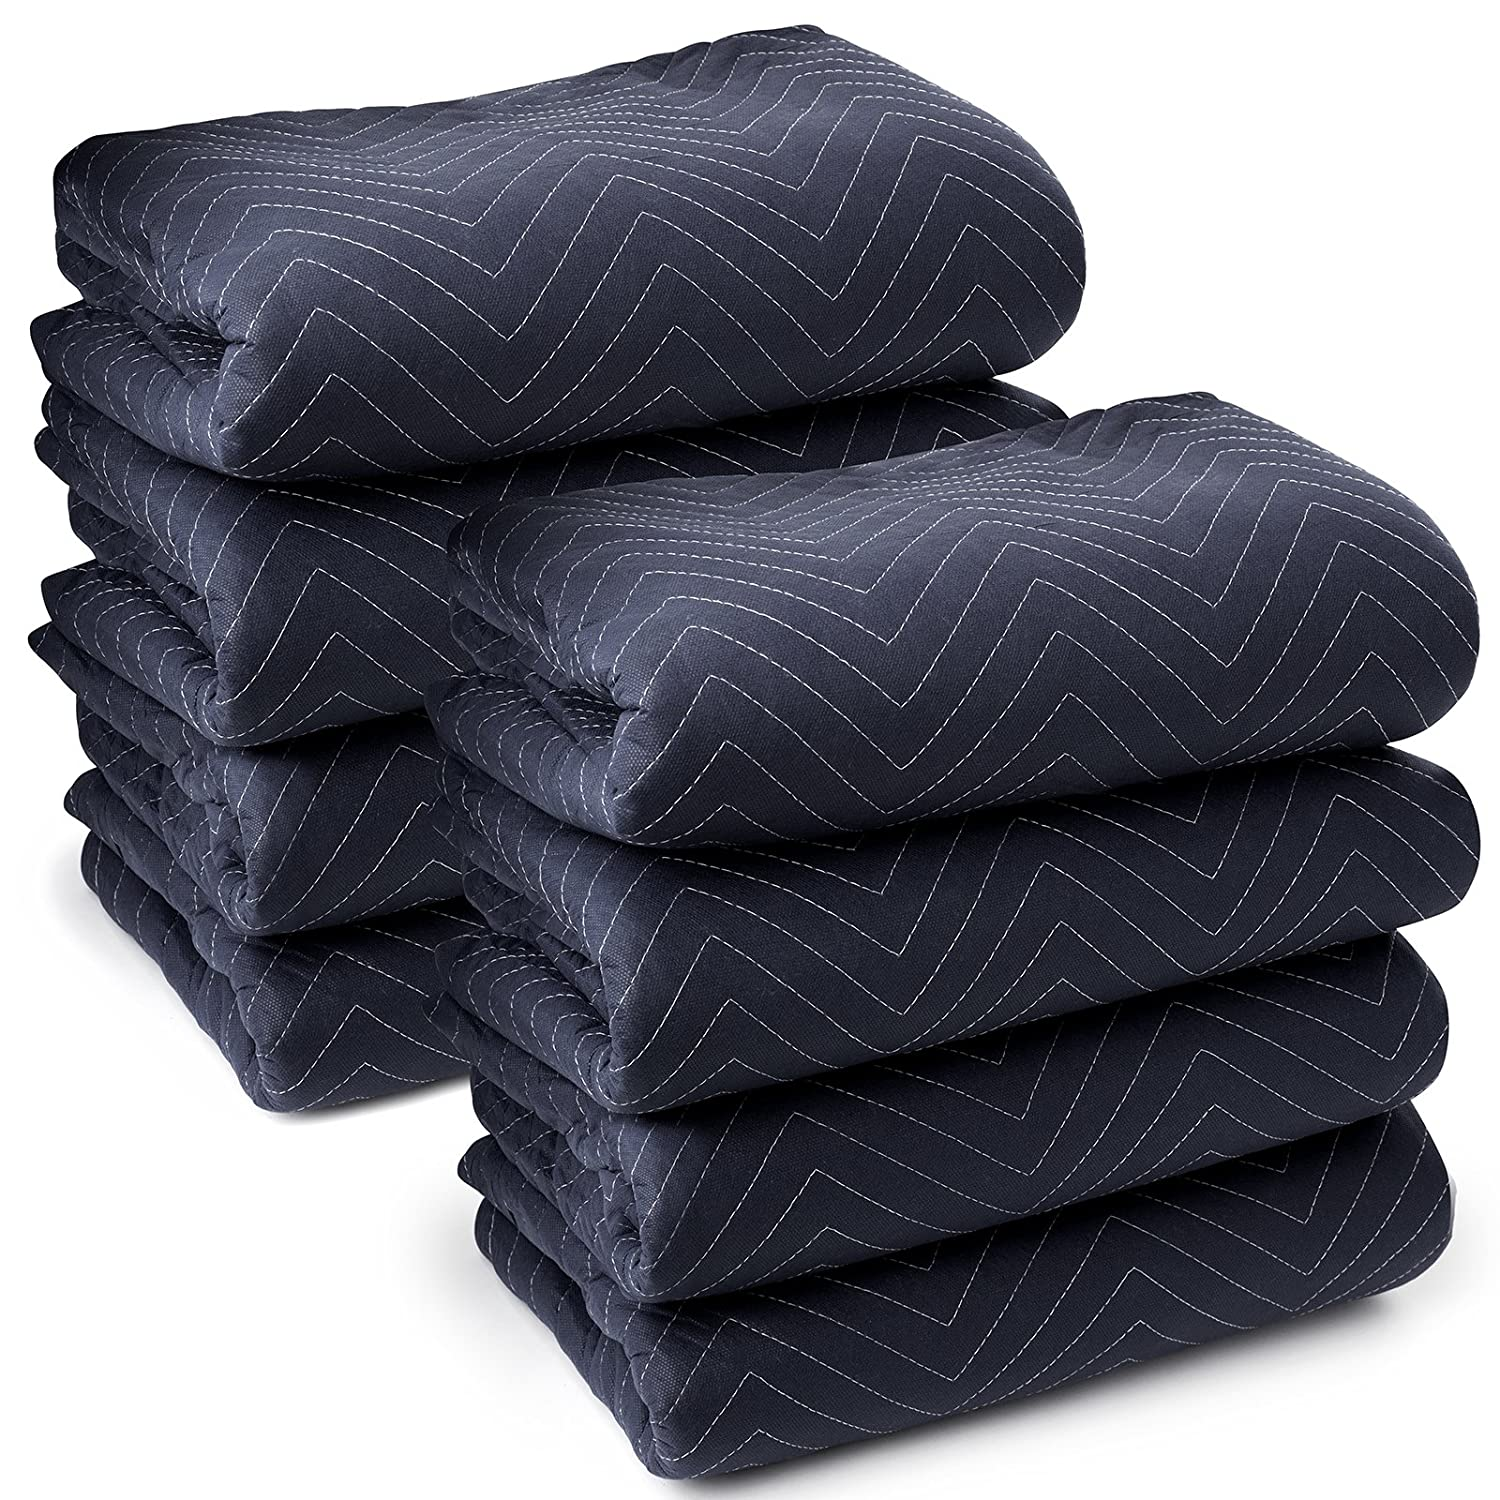 "Sure-Max 8 Moving & Packing Blankets - Pro Economy - 80"" x 72"" (35 lb/dz weight) - Professional Quilted Shipping Furniture Pads Navy Blue and Black"